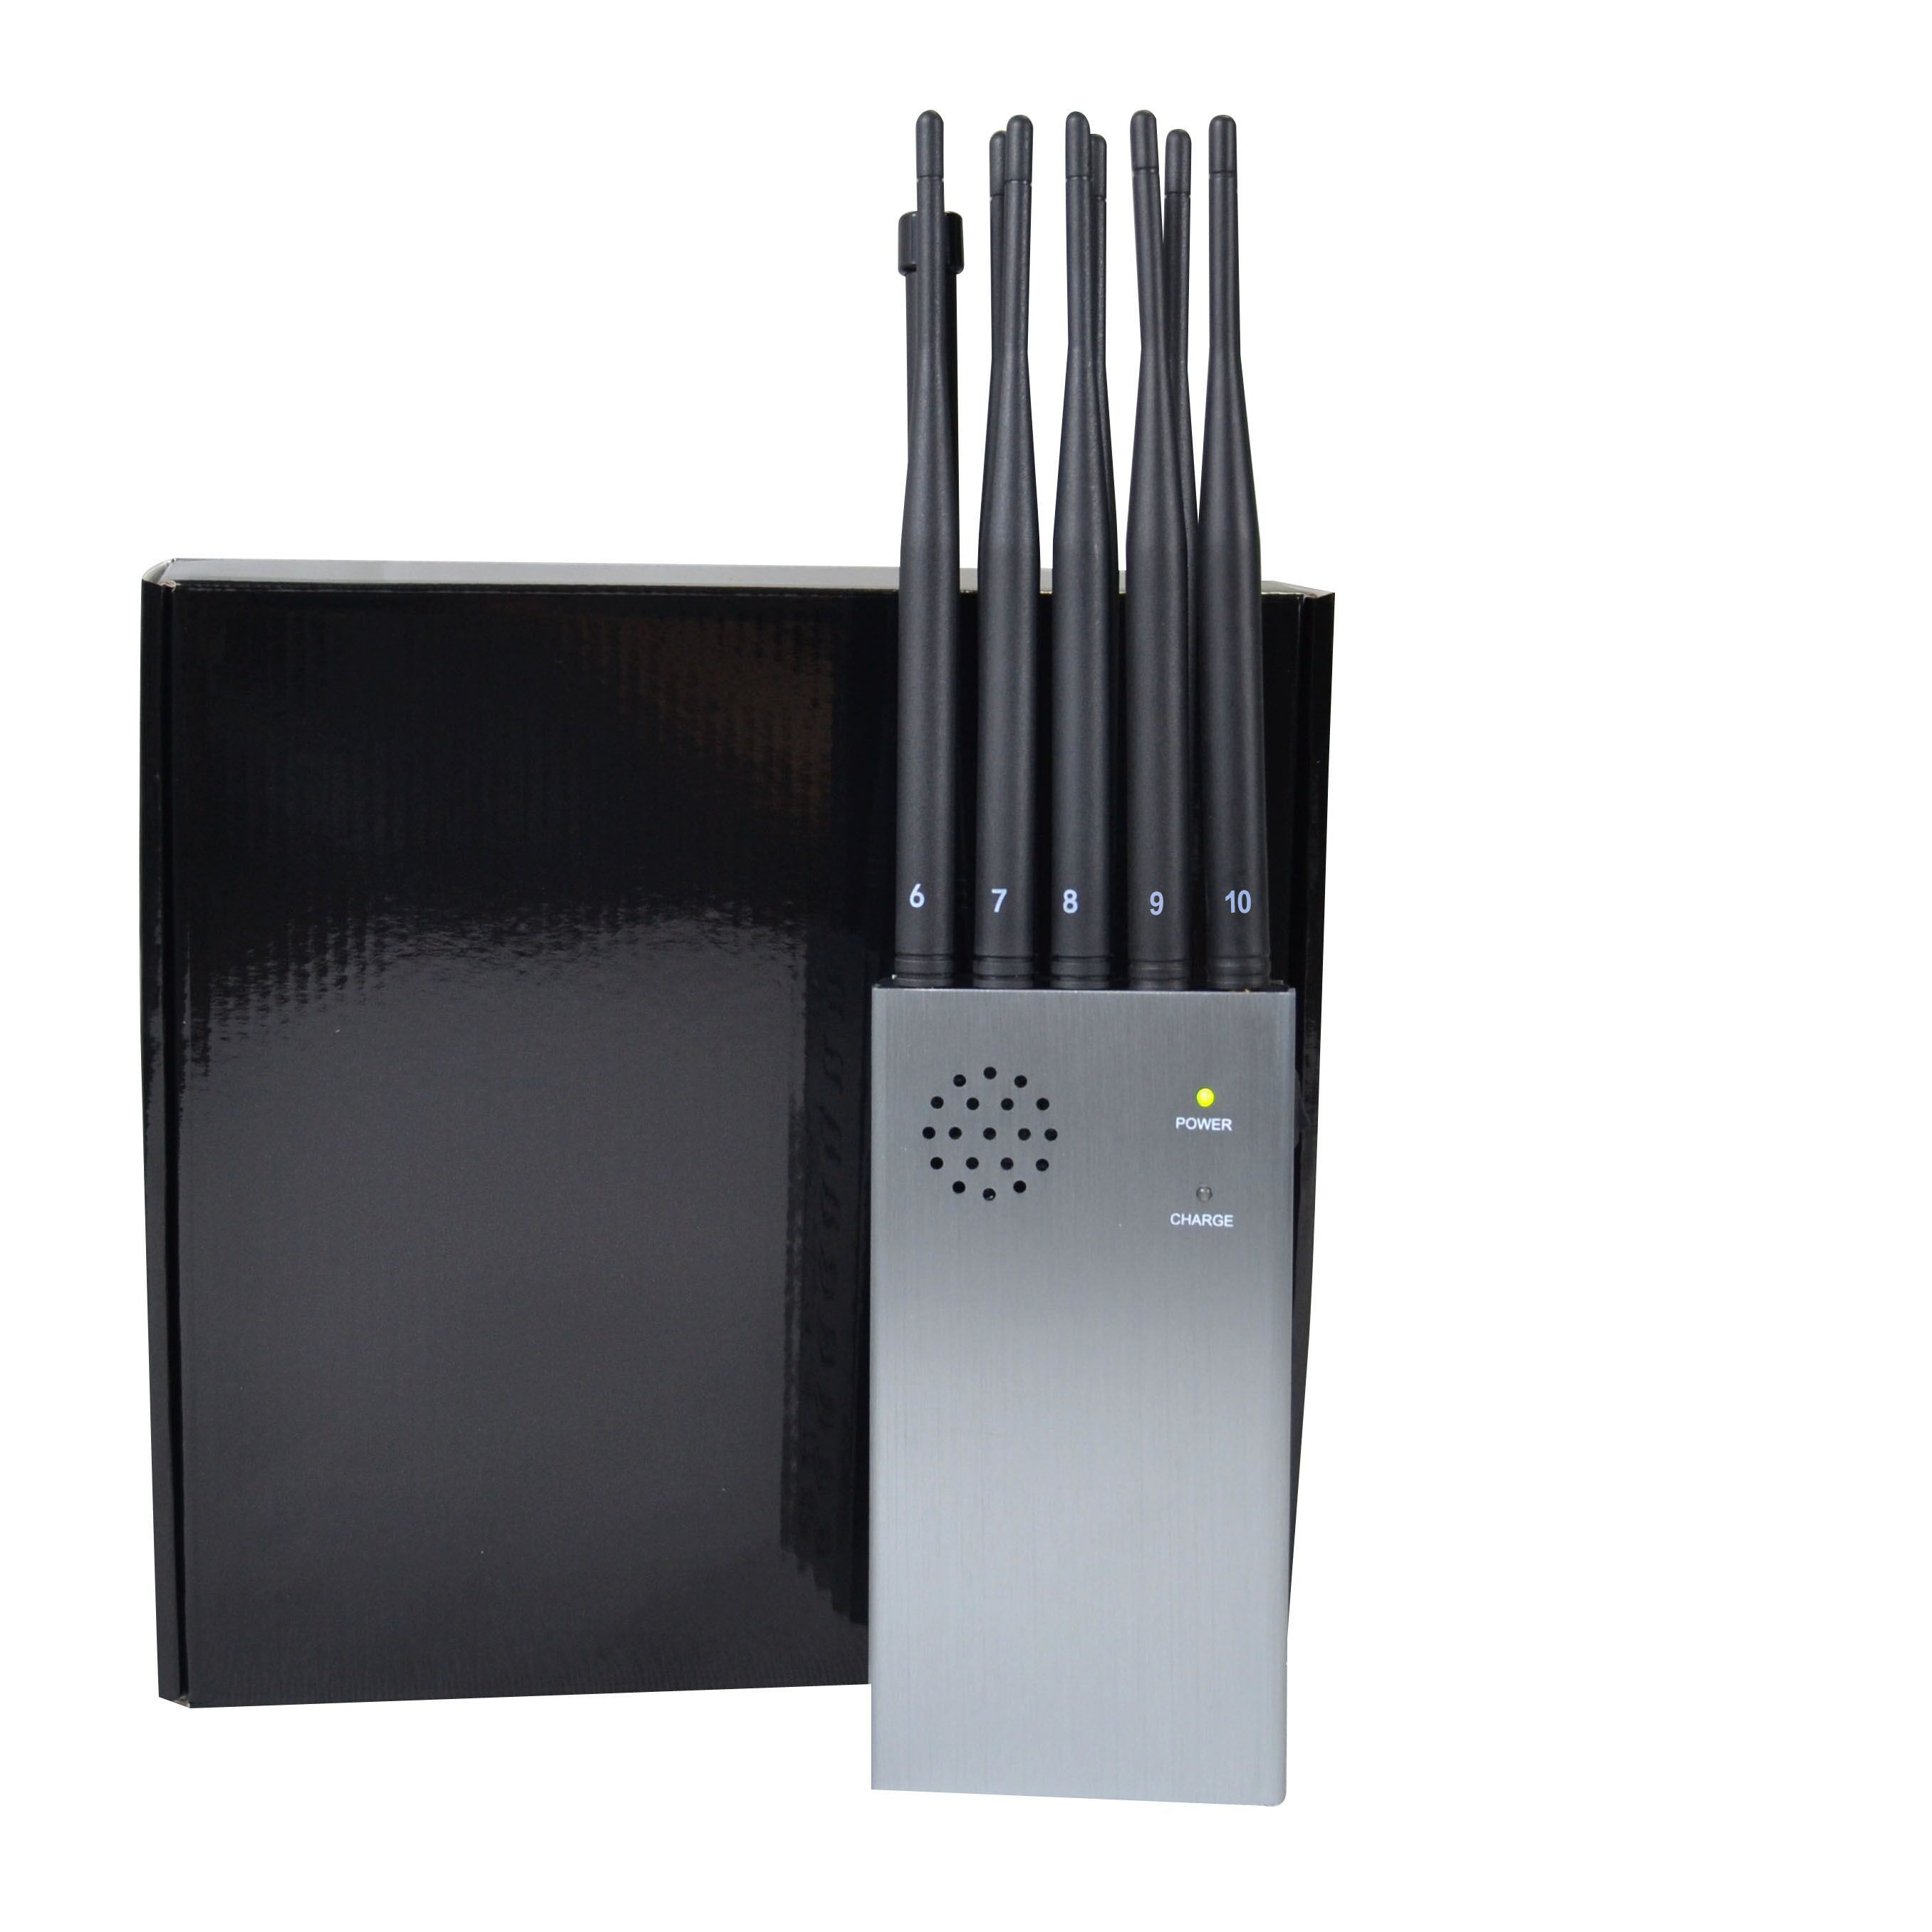 gps signal jammer uk ltd - China Power King Jammers of Cpjp10 with 8000mA 2g 3G 4G 5g Remote Control Jammers for 2g 3G 4G 5g Lojack - China 8000mA Battery Jammer, Large Volume Power Signal Blocker